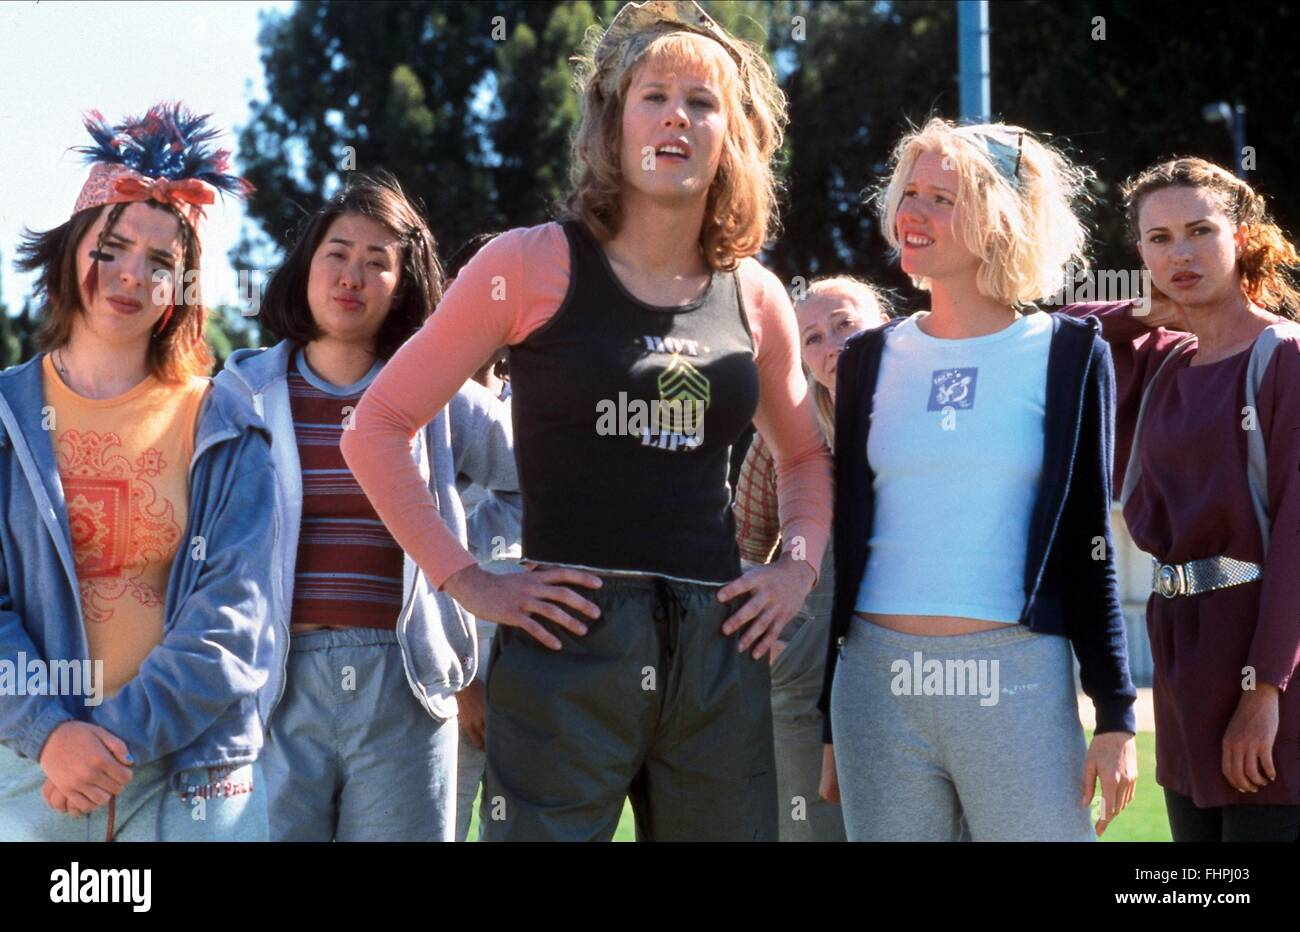 MICHAEL ROSENBAUM SORORITY BOYS (2002 Stock Photo ...